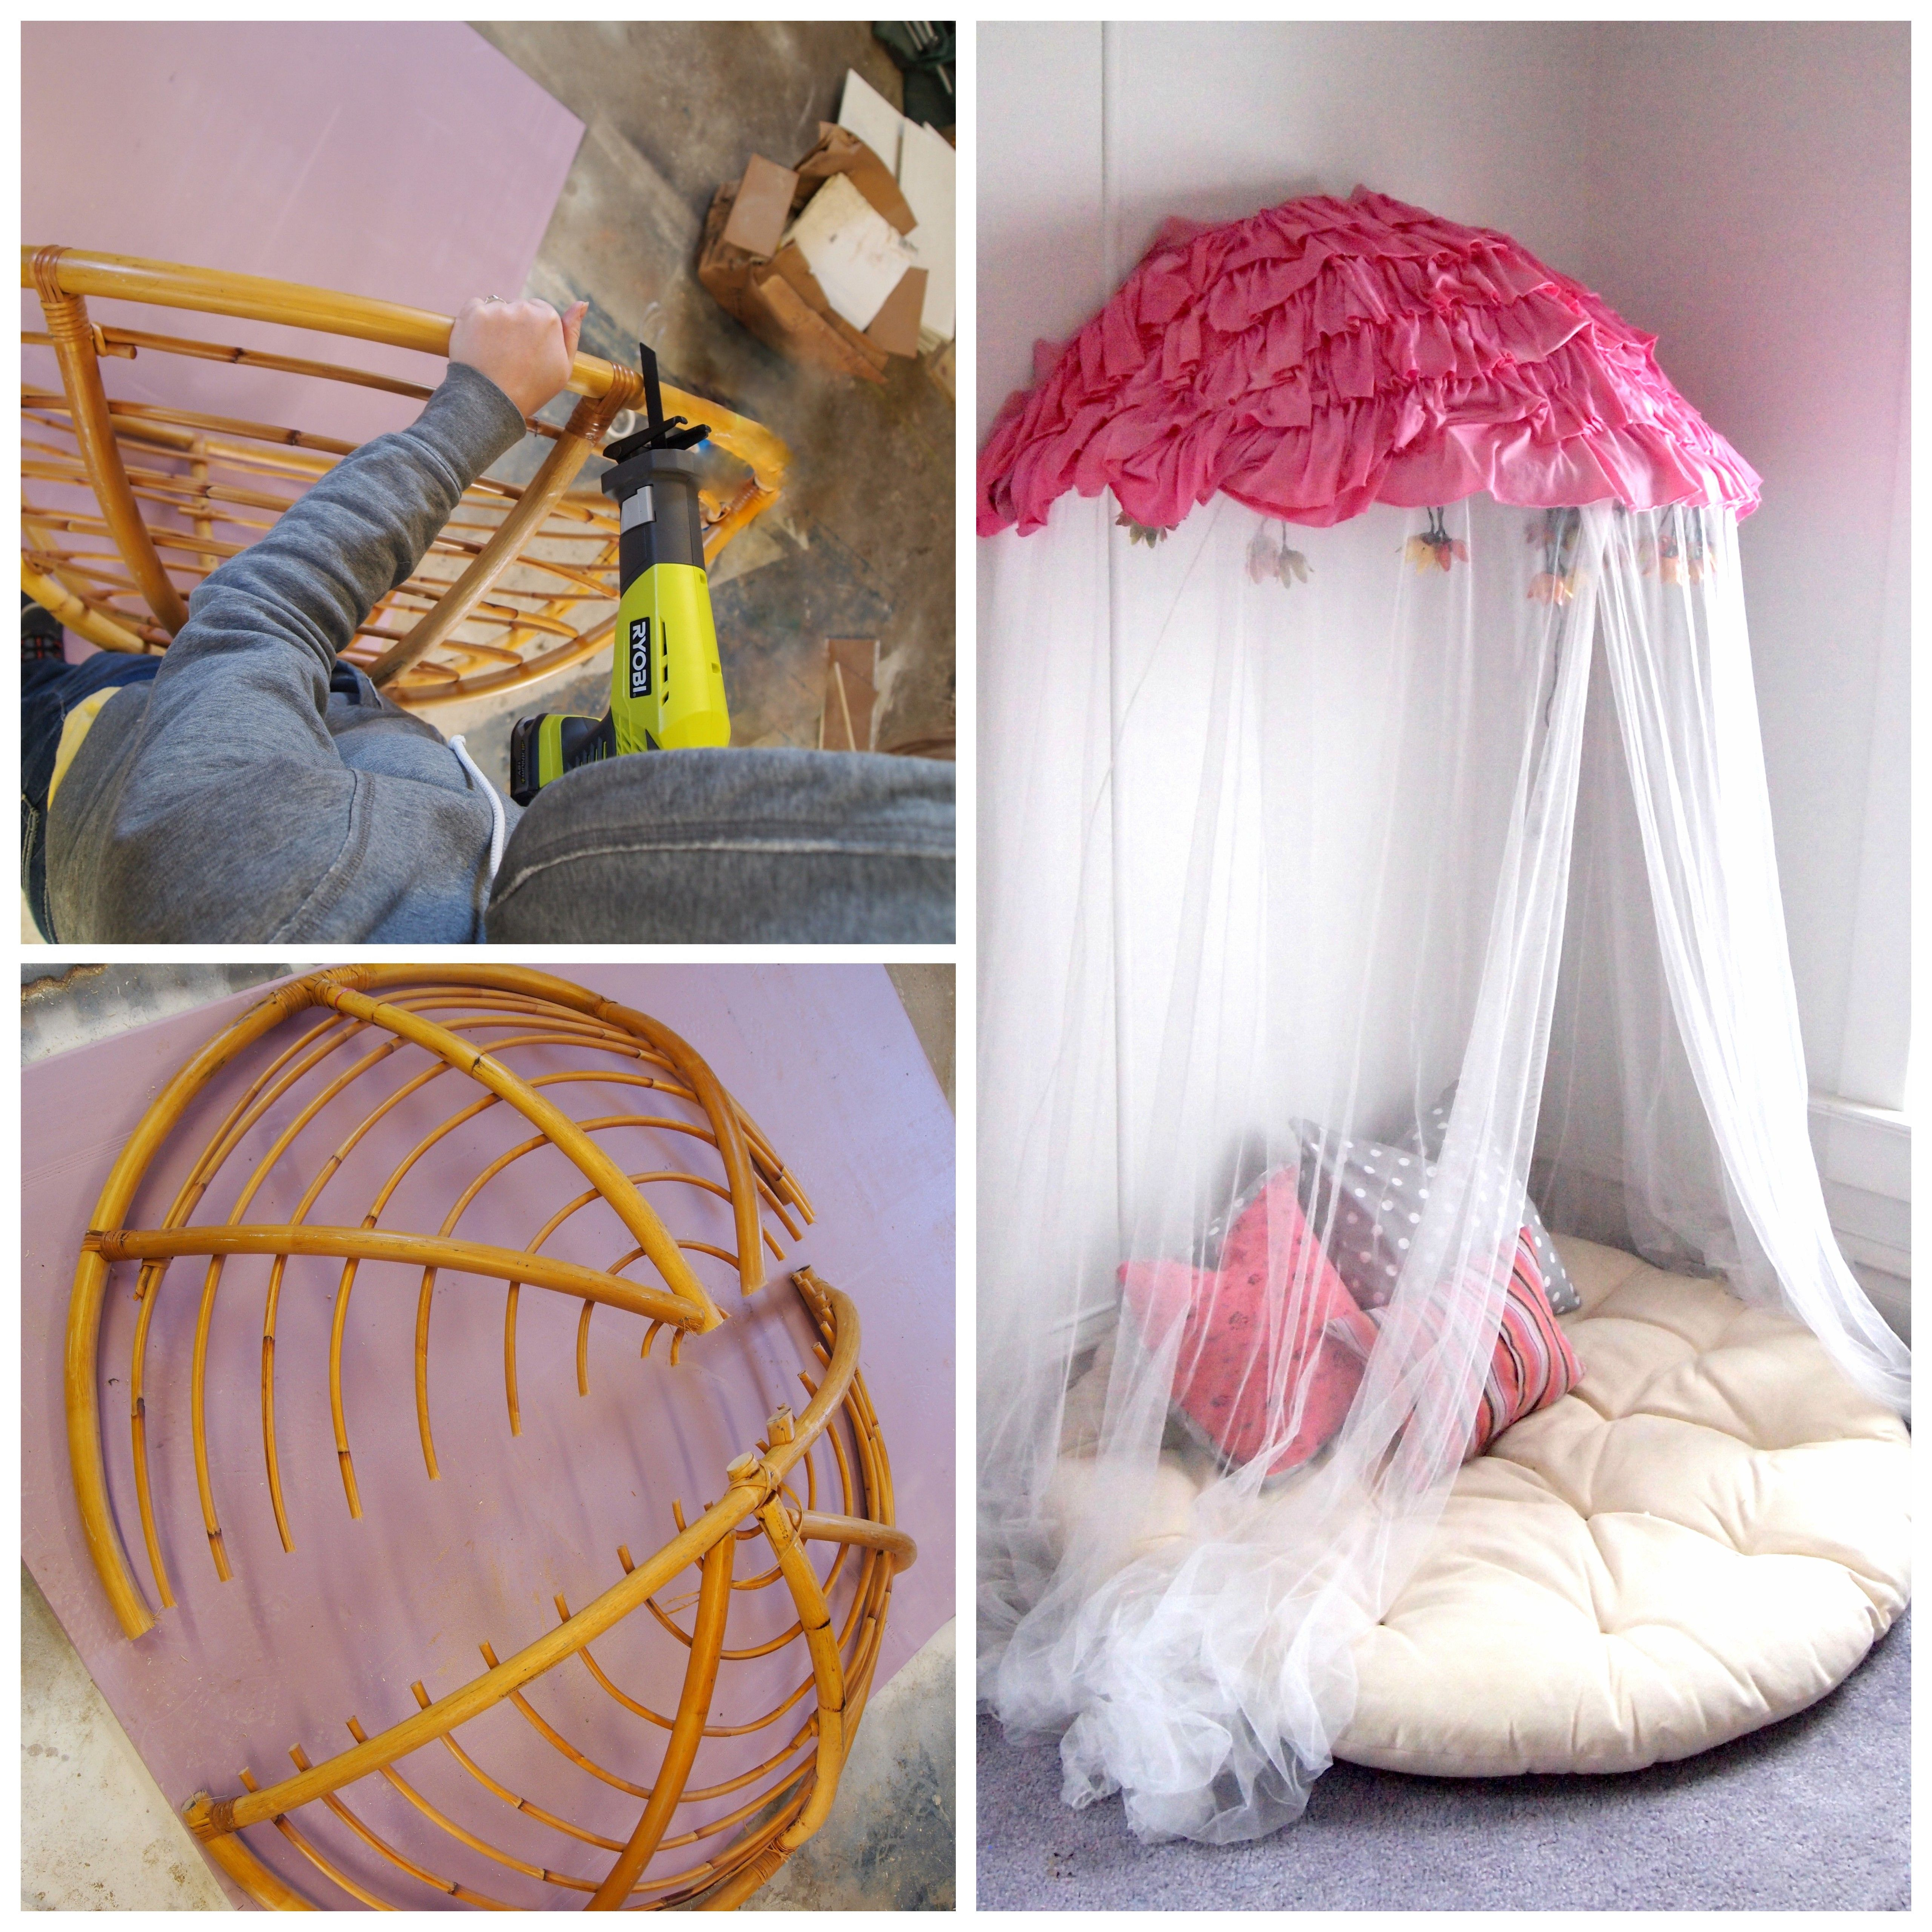 Charmant Take An Old Papasan Chair Frame And Cut It In Have To Make This Darling U0027 Papasan Reading Nooku0027 Canopy! {Reality Daydream}